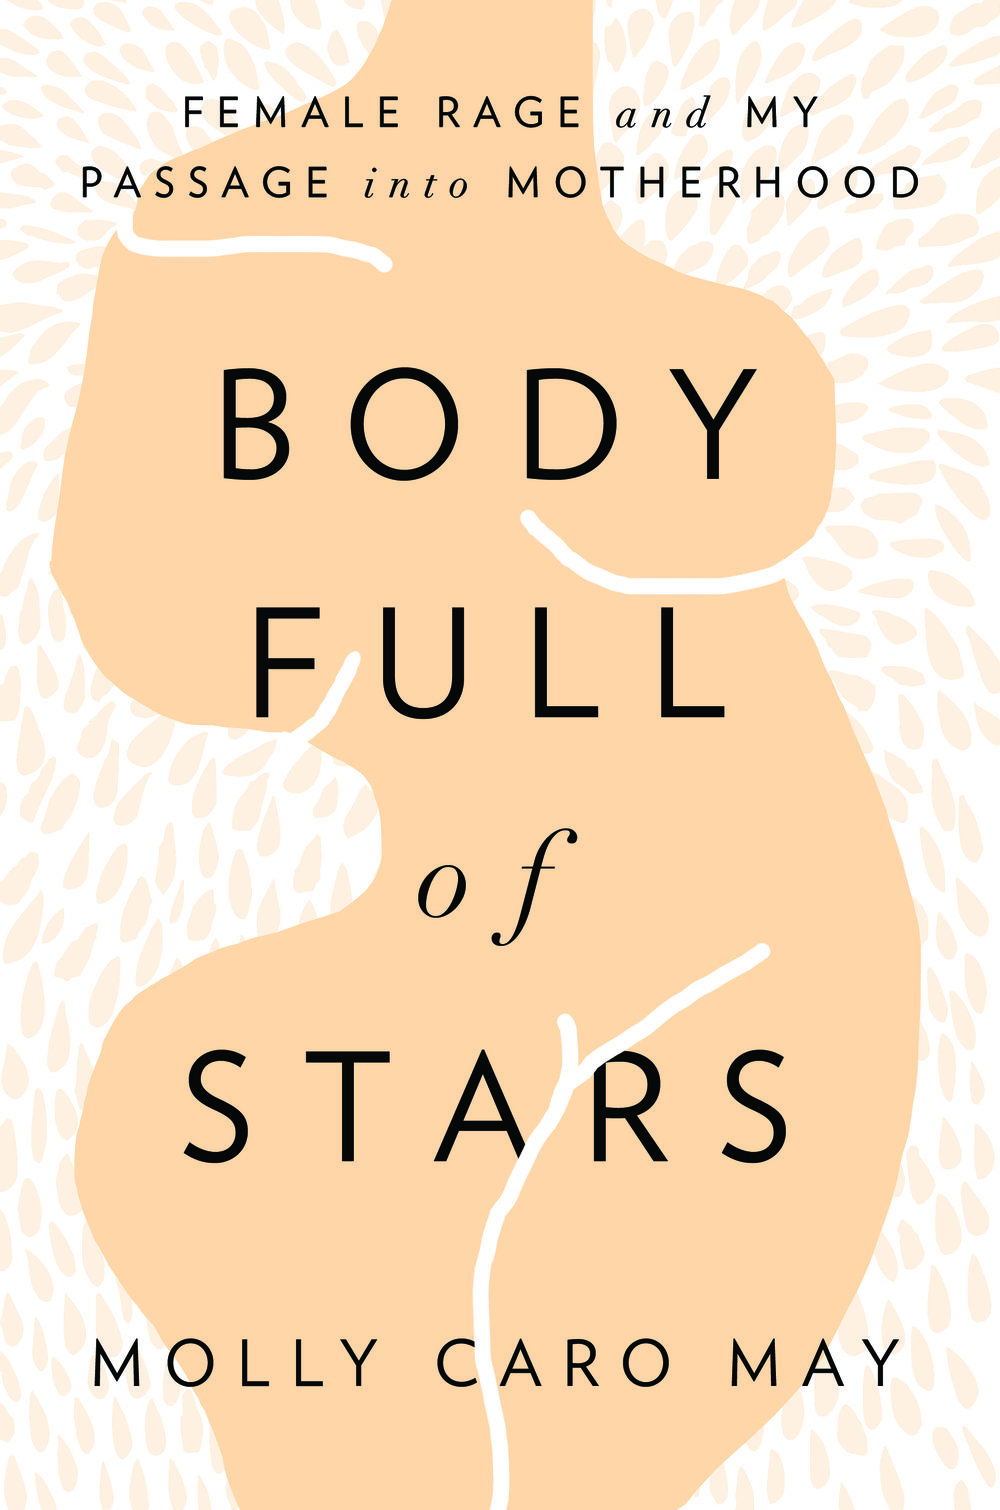 Body Full of Stars_cvr_300dpi print res.jpg